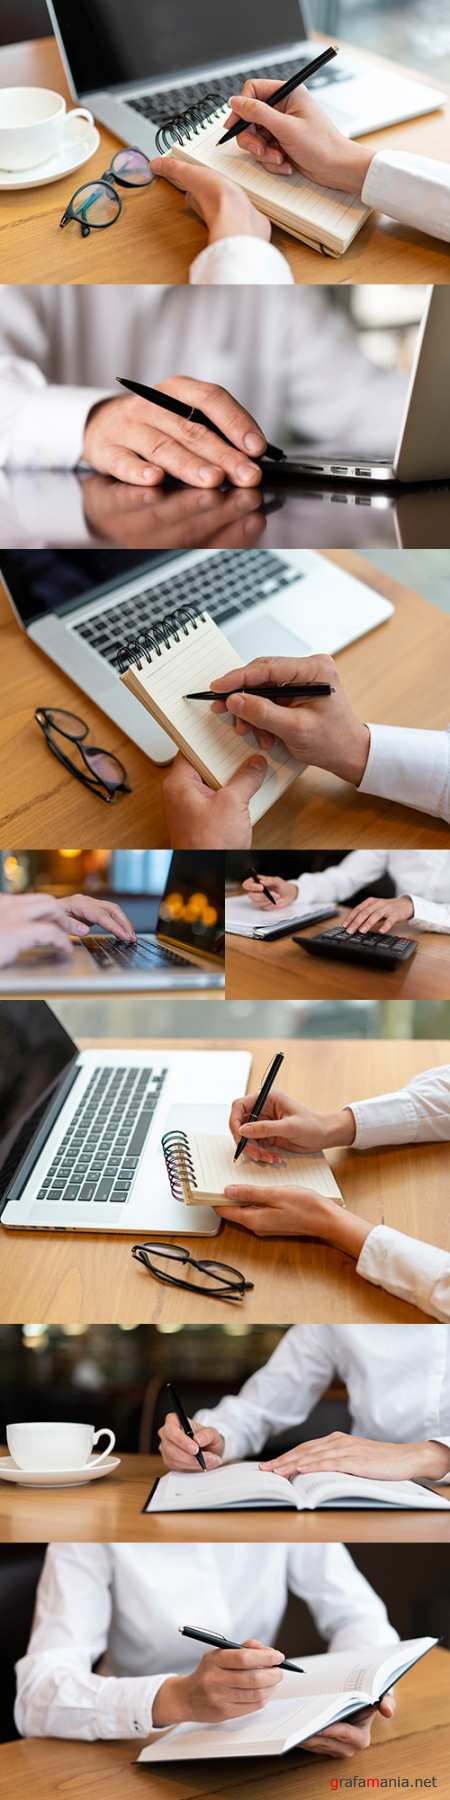 Business desktop, hands with notebook and keyboard